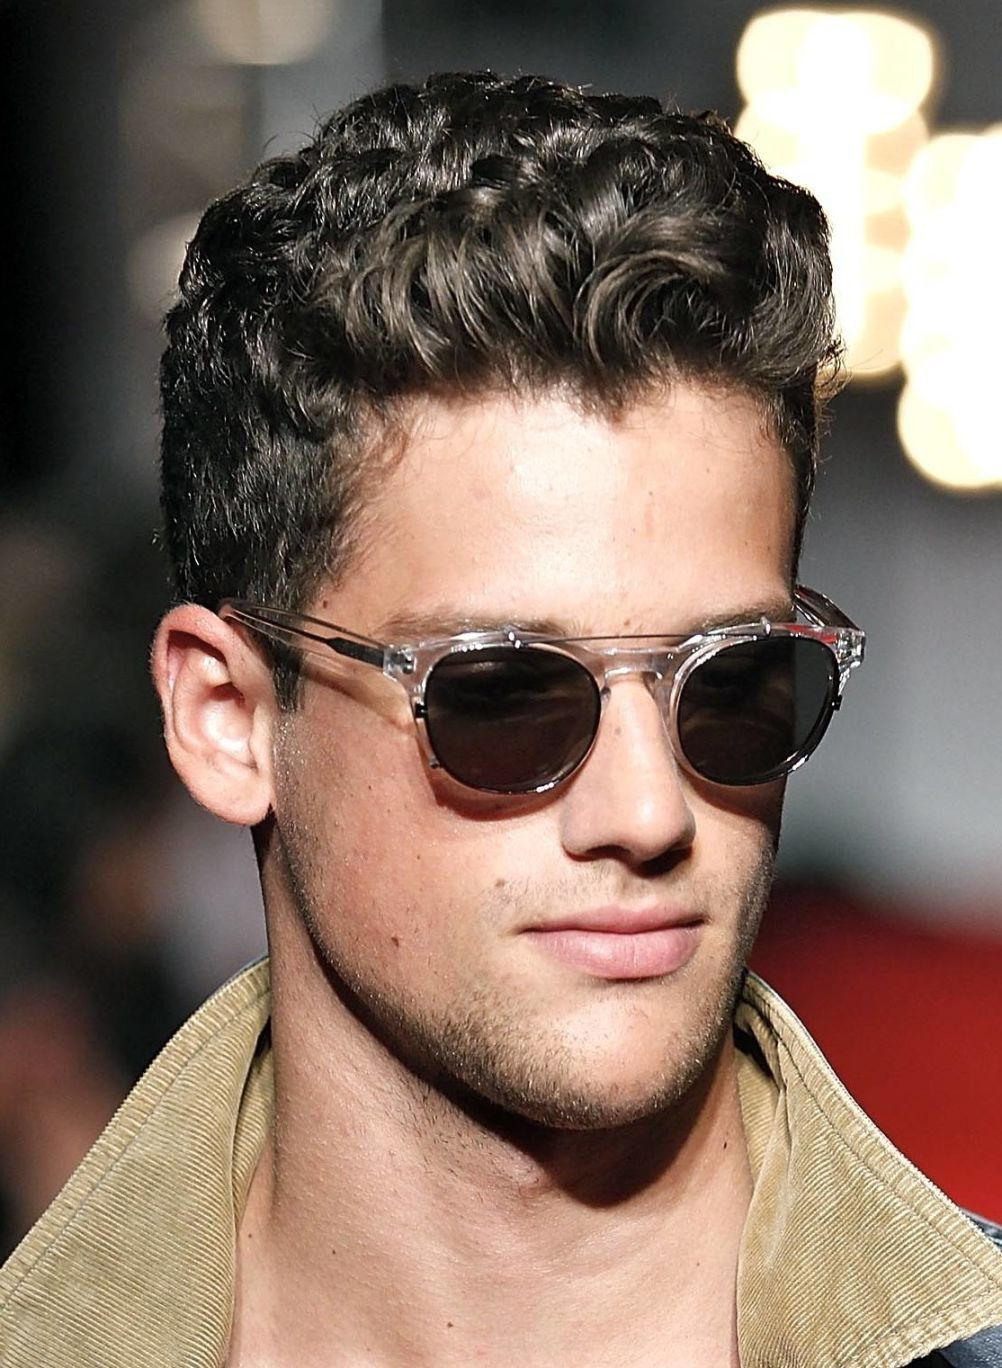 Sexiest Curly Hairstyles For Men Curly hair men, Wavy